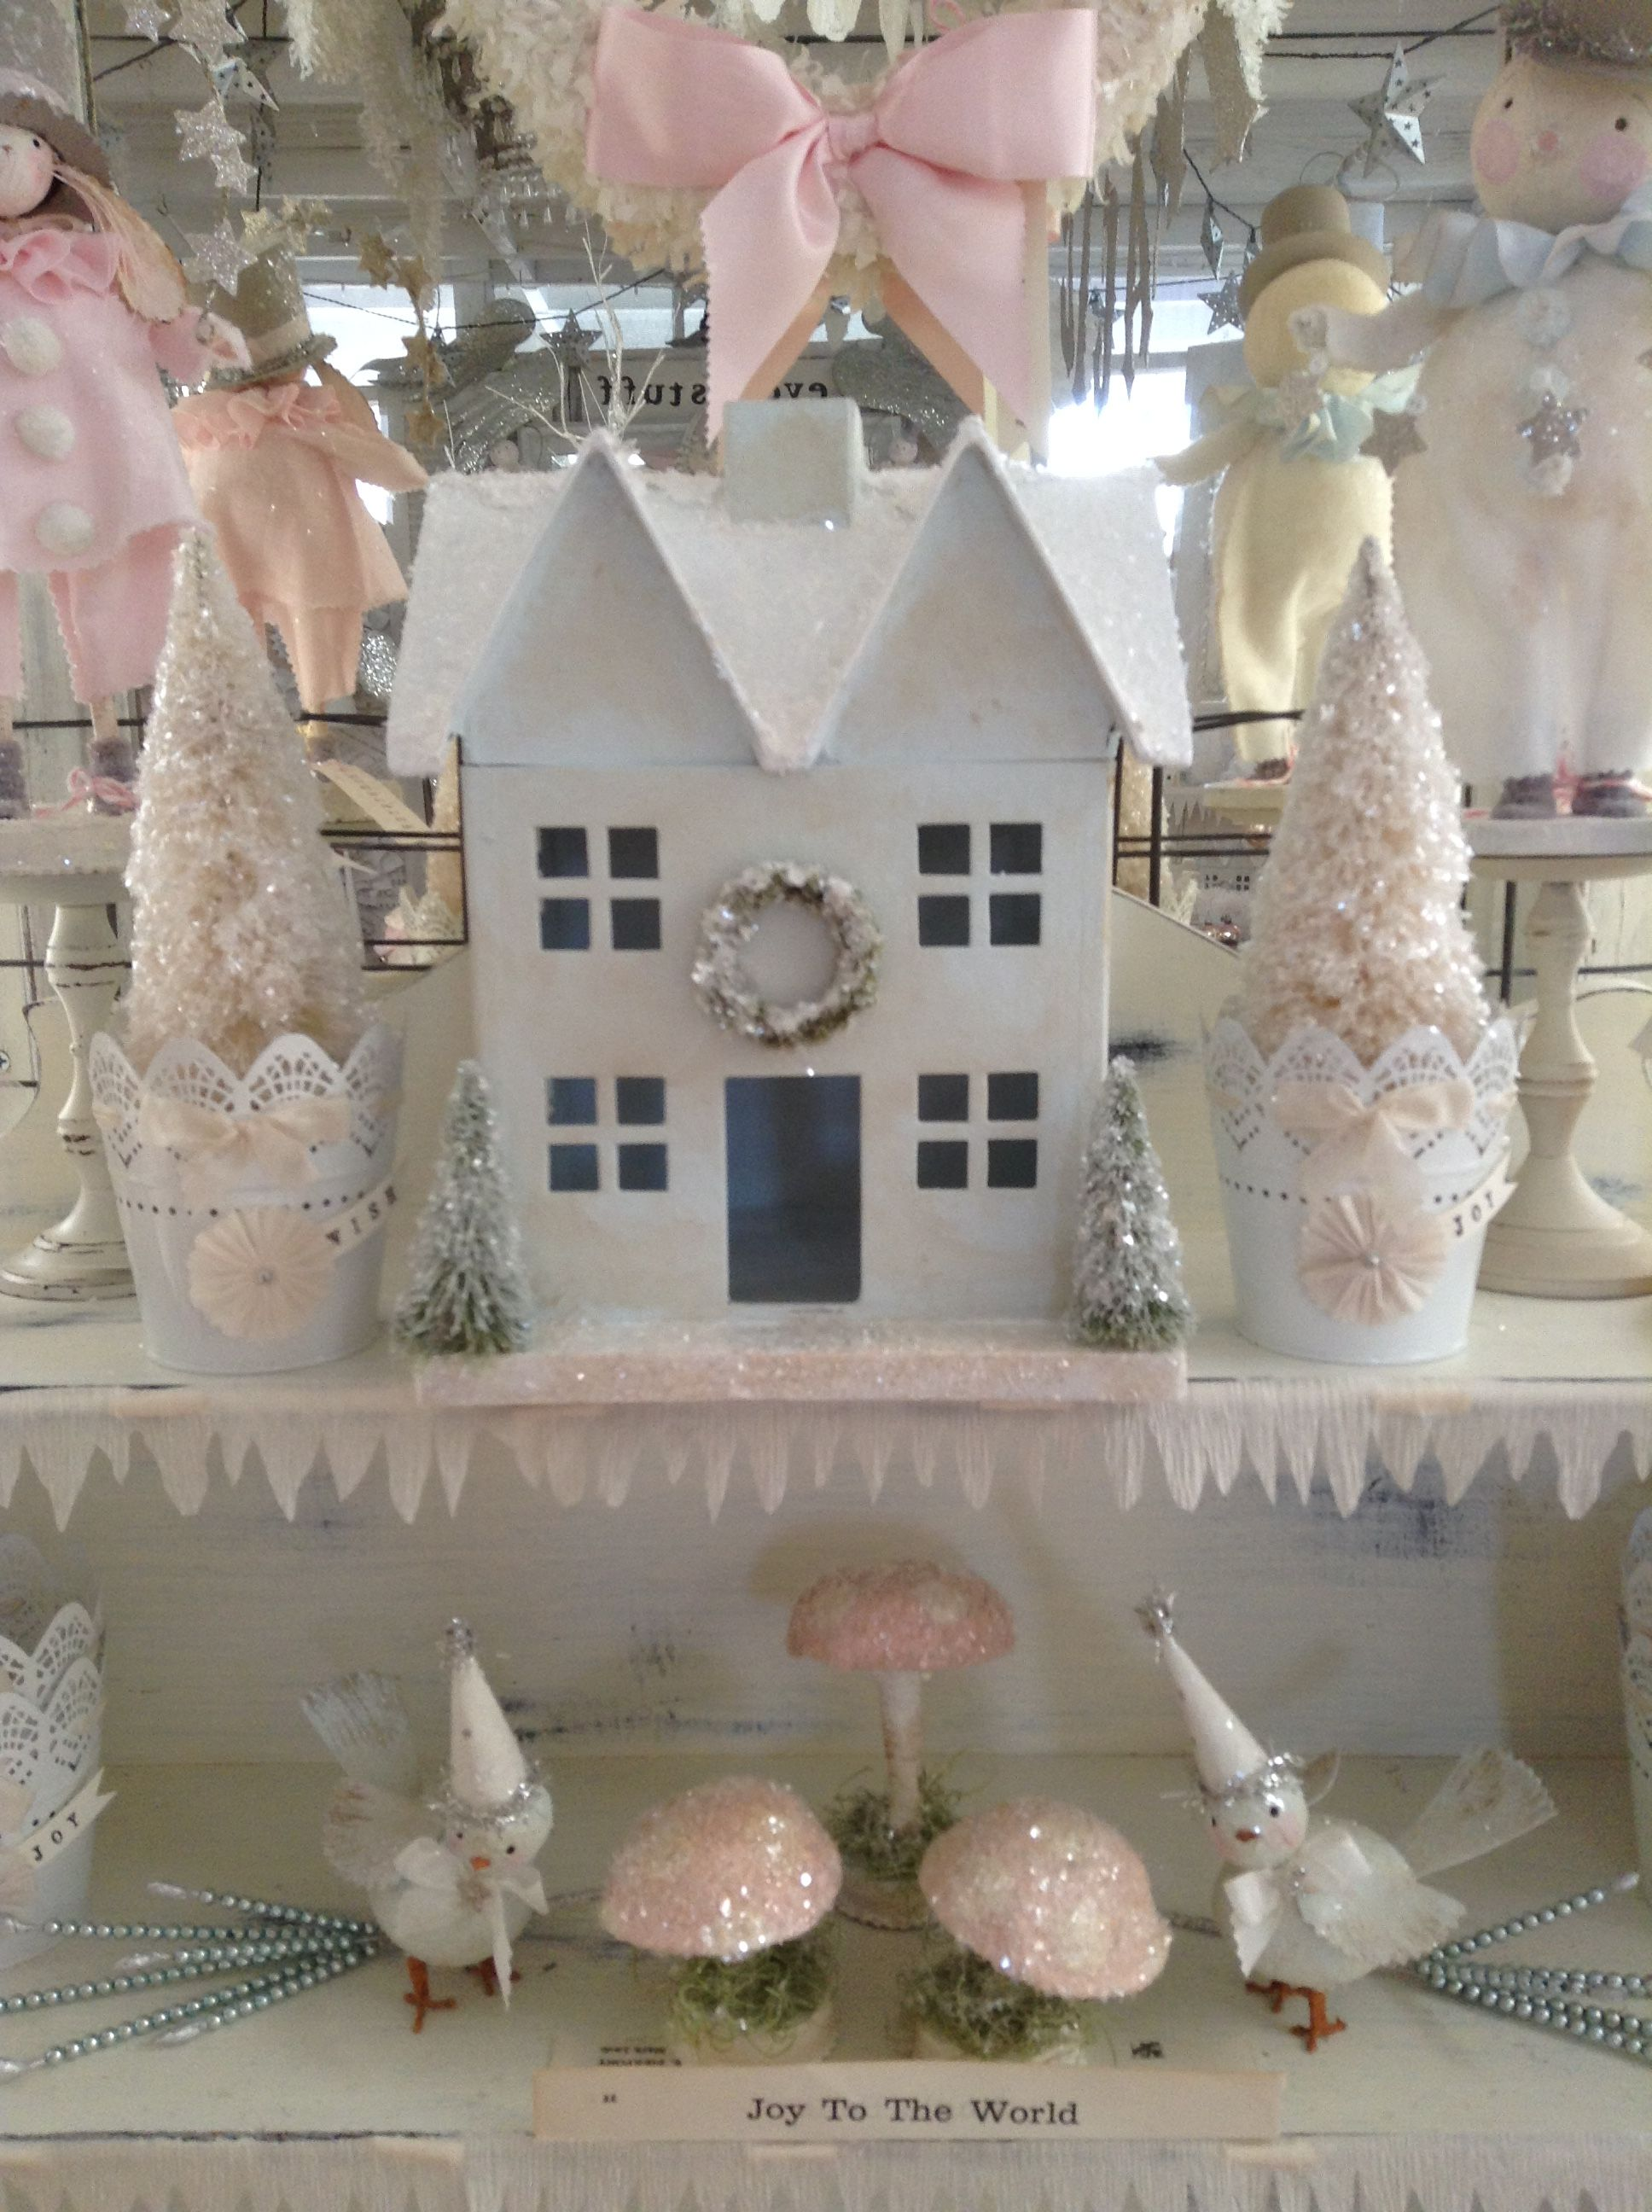 Pin by Jeanine Laissue on Glitter Houses | Pinterest | Pink ...